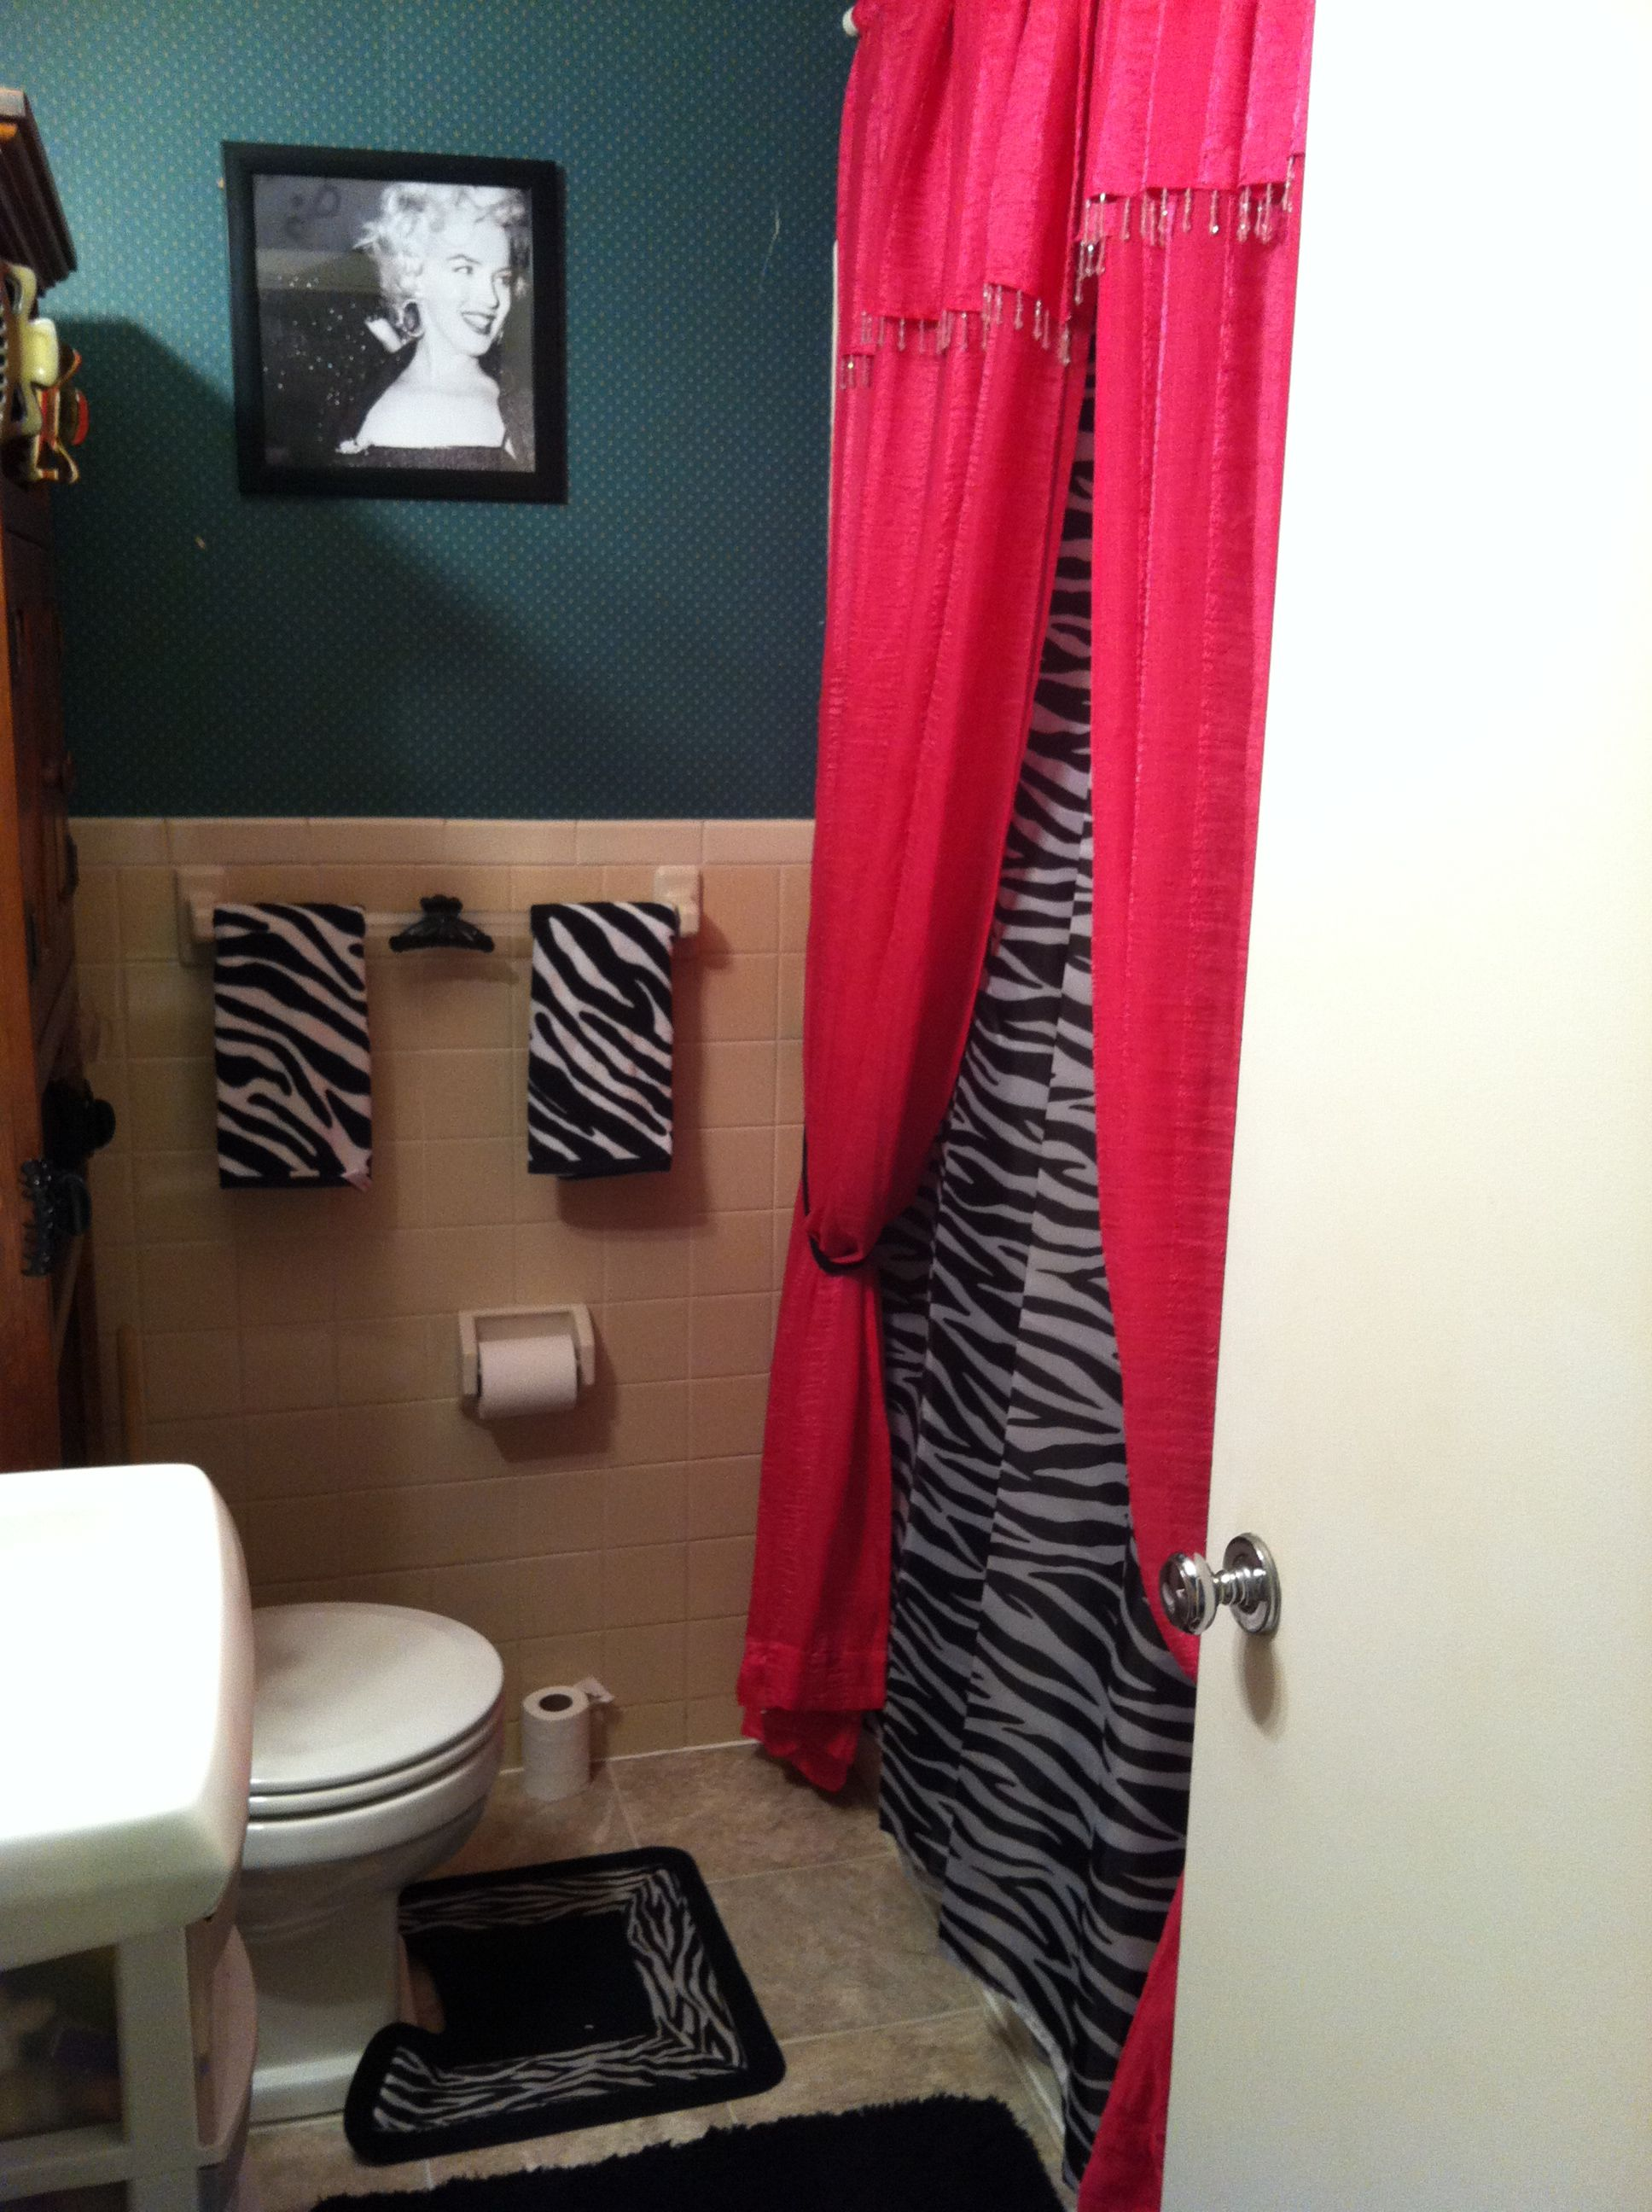 Cute Pink And Zebra Bathroom! Love The Shower Curtain.